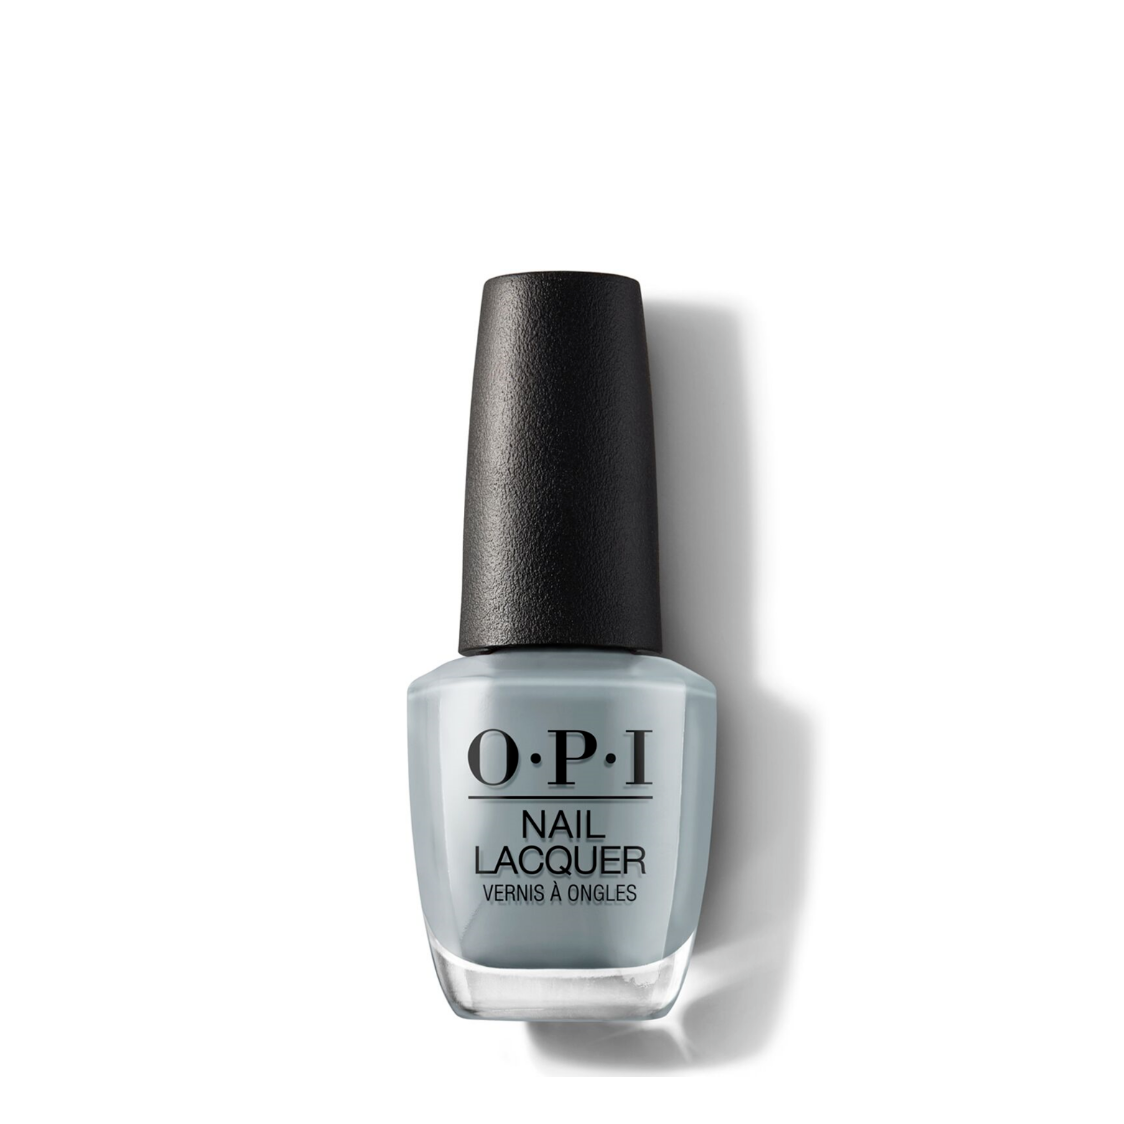 Opi Sheers 2019 Nail Lacquer Ring Bare-er 15ml